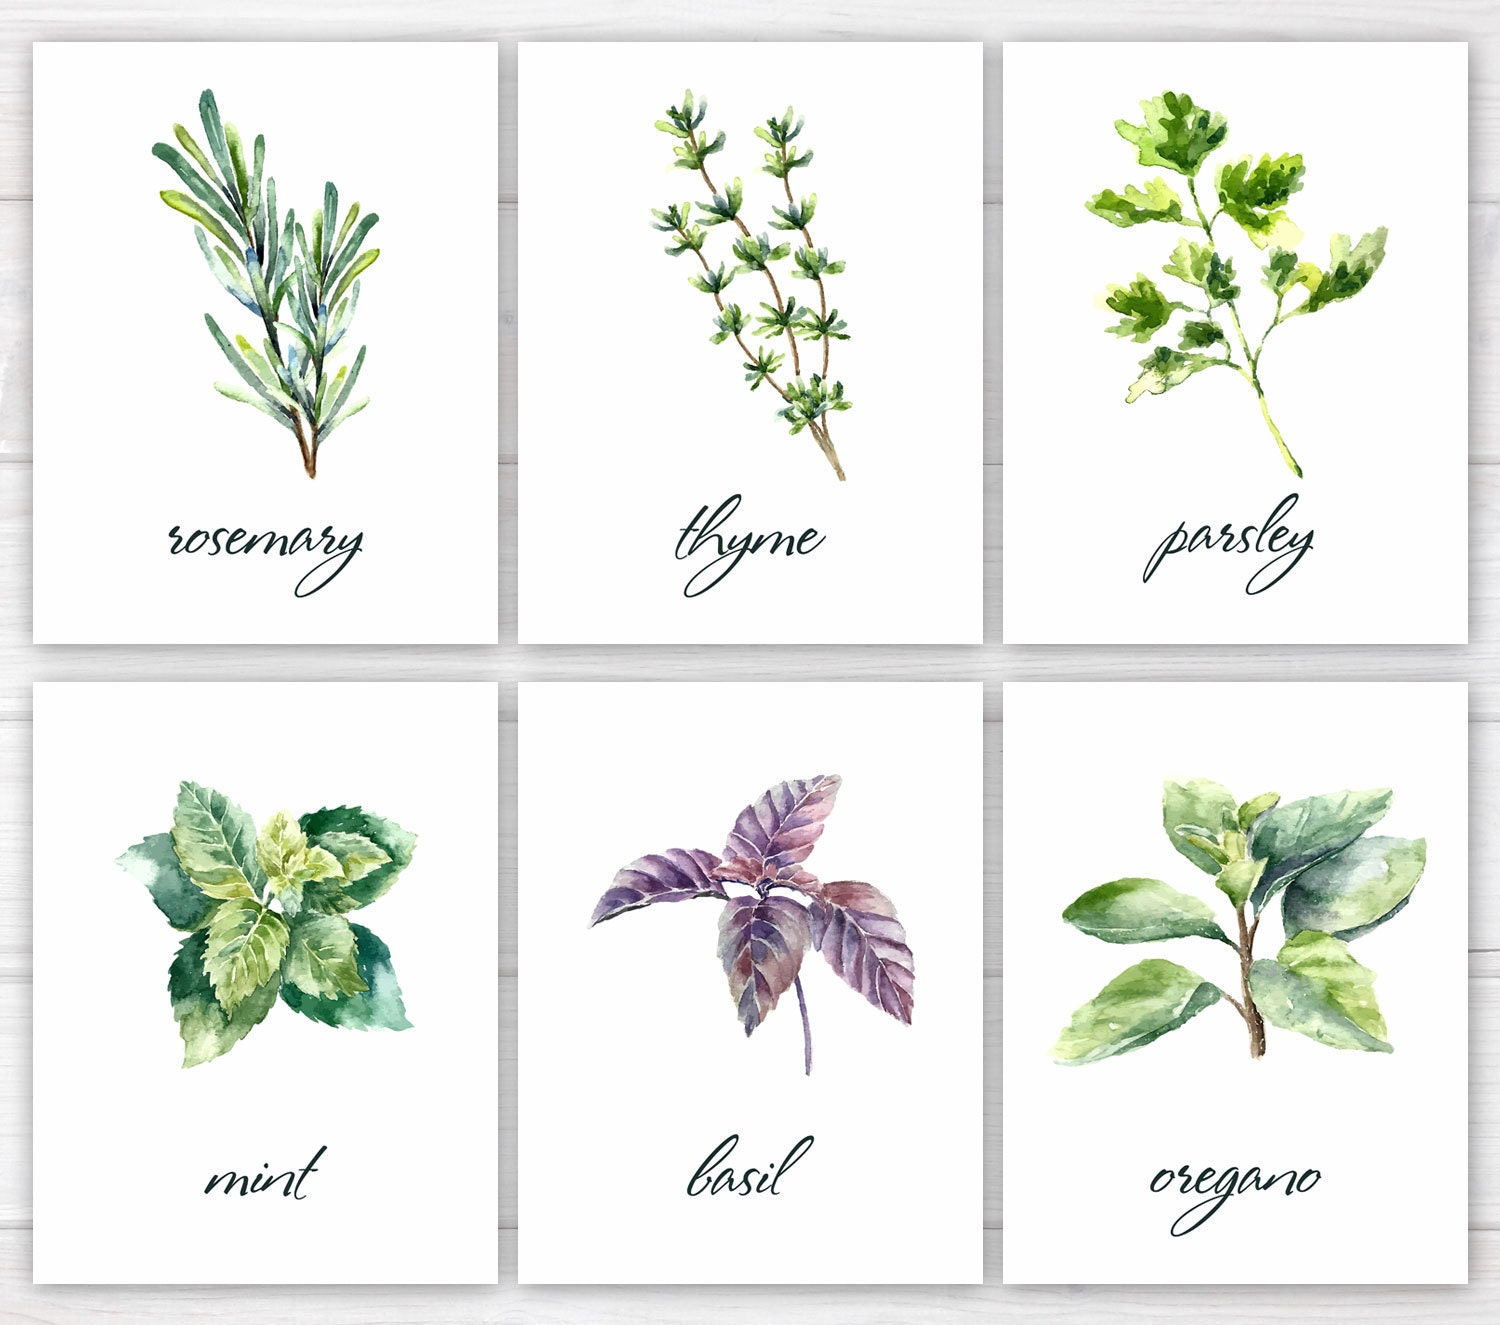 Kitchen Art Vegetables Print Botanicals Kitchen Art: Herbs Print Kitchen Print Kitchen Printable Watercolor